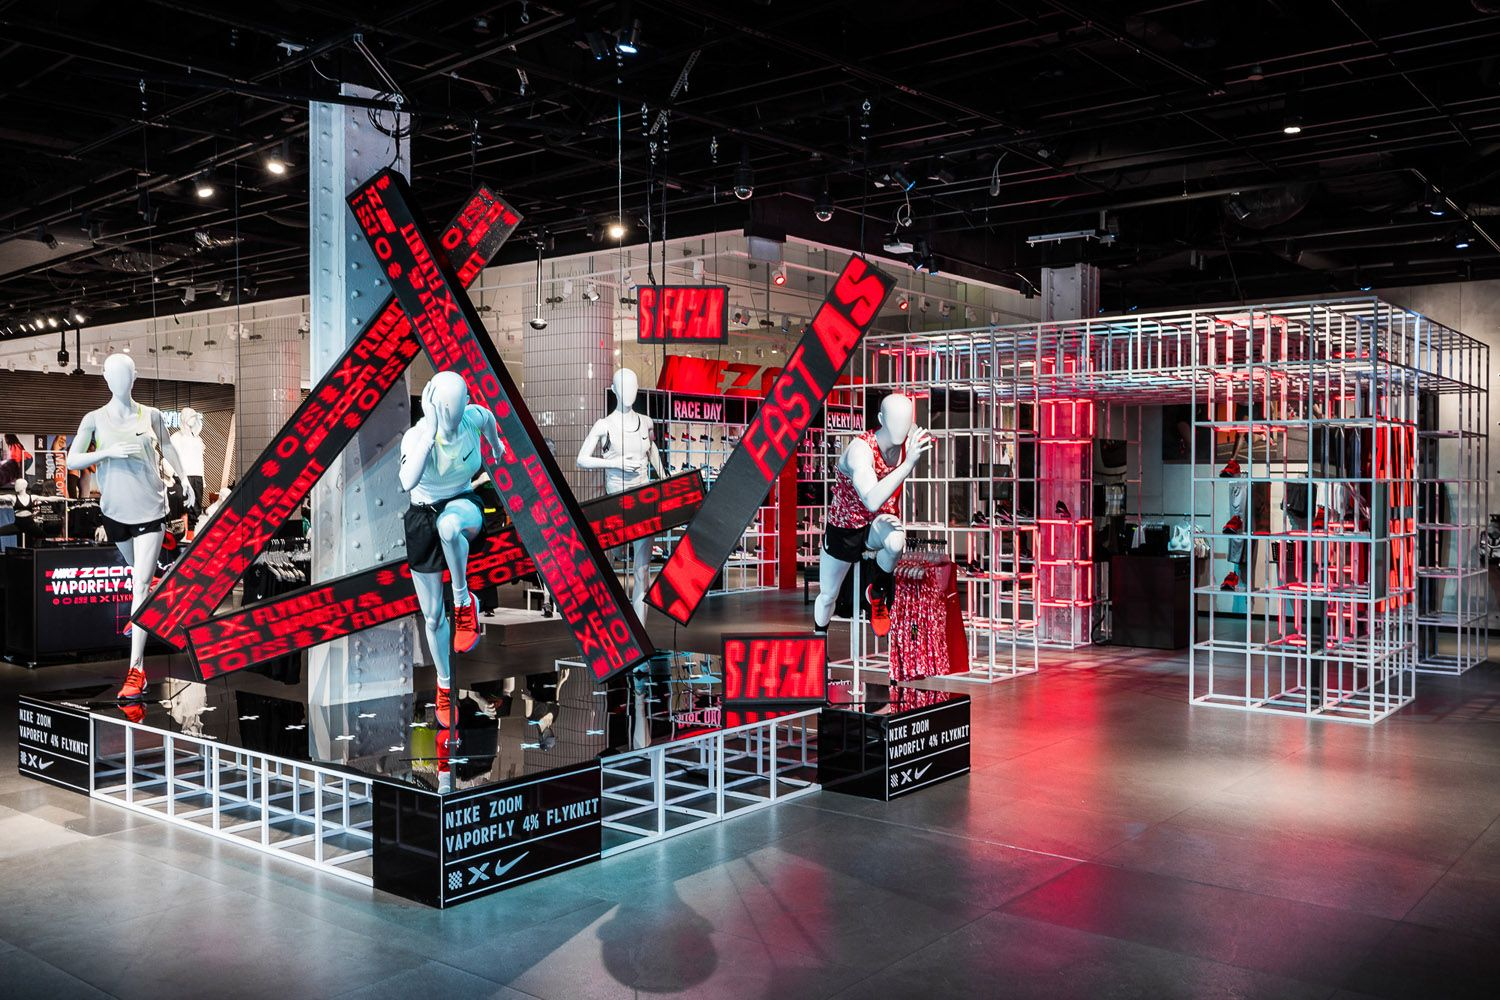 Escupir acoplador nitrógeno  Nike Town London - Nike 4% - Retail Focus | Merchandising displays, London  town, Display design